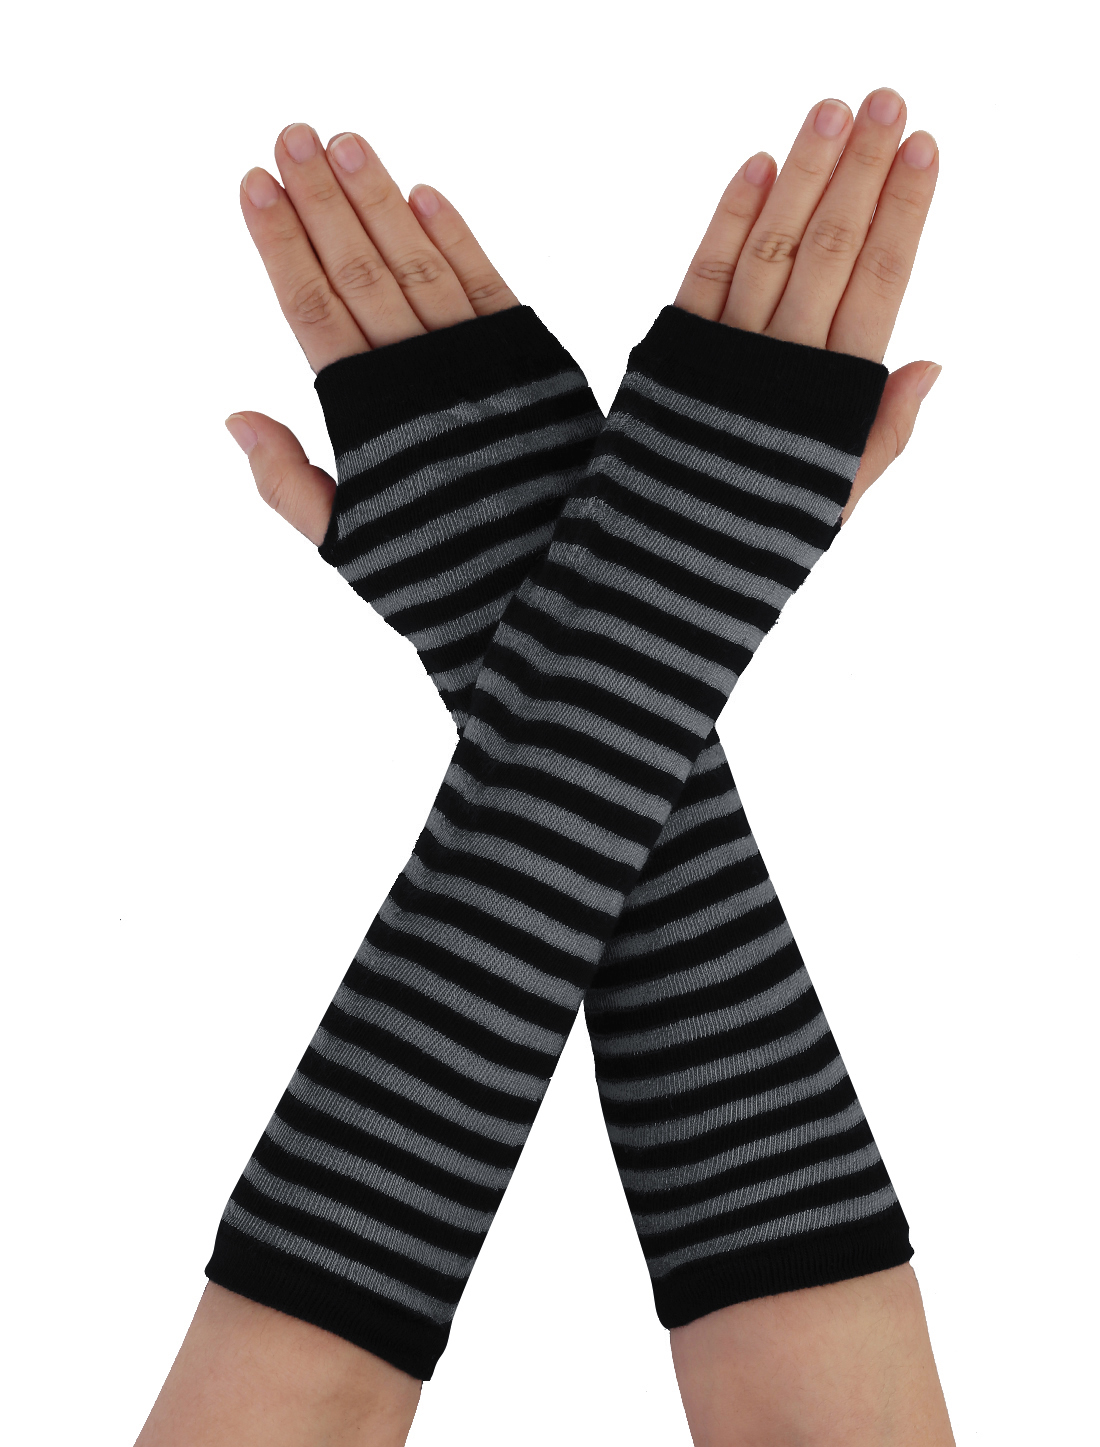 Women Black Gray Stripe Print Knit Fingerless Elbow Length Gloves Warmers Pair